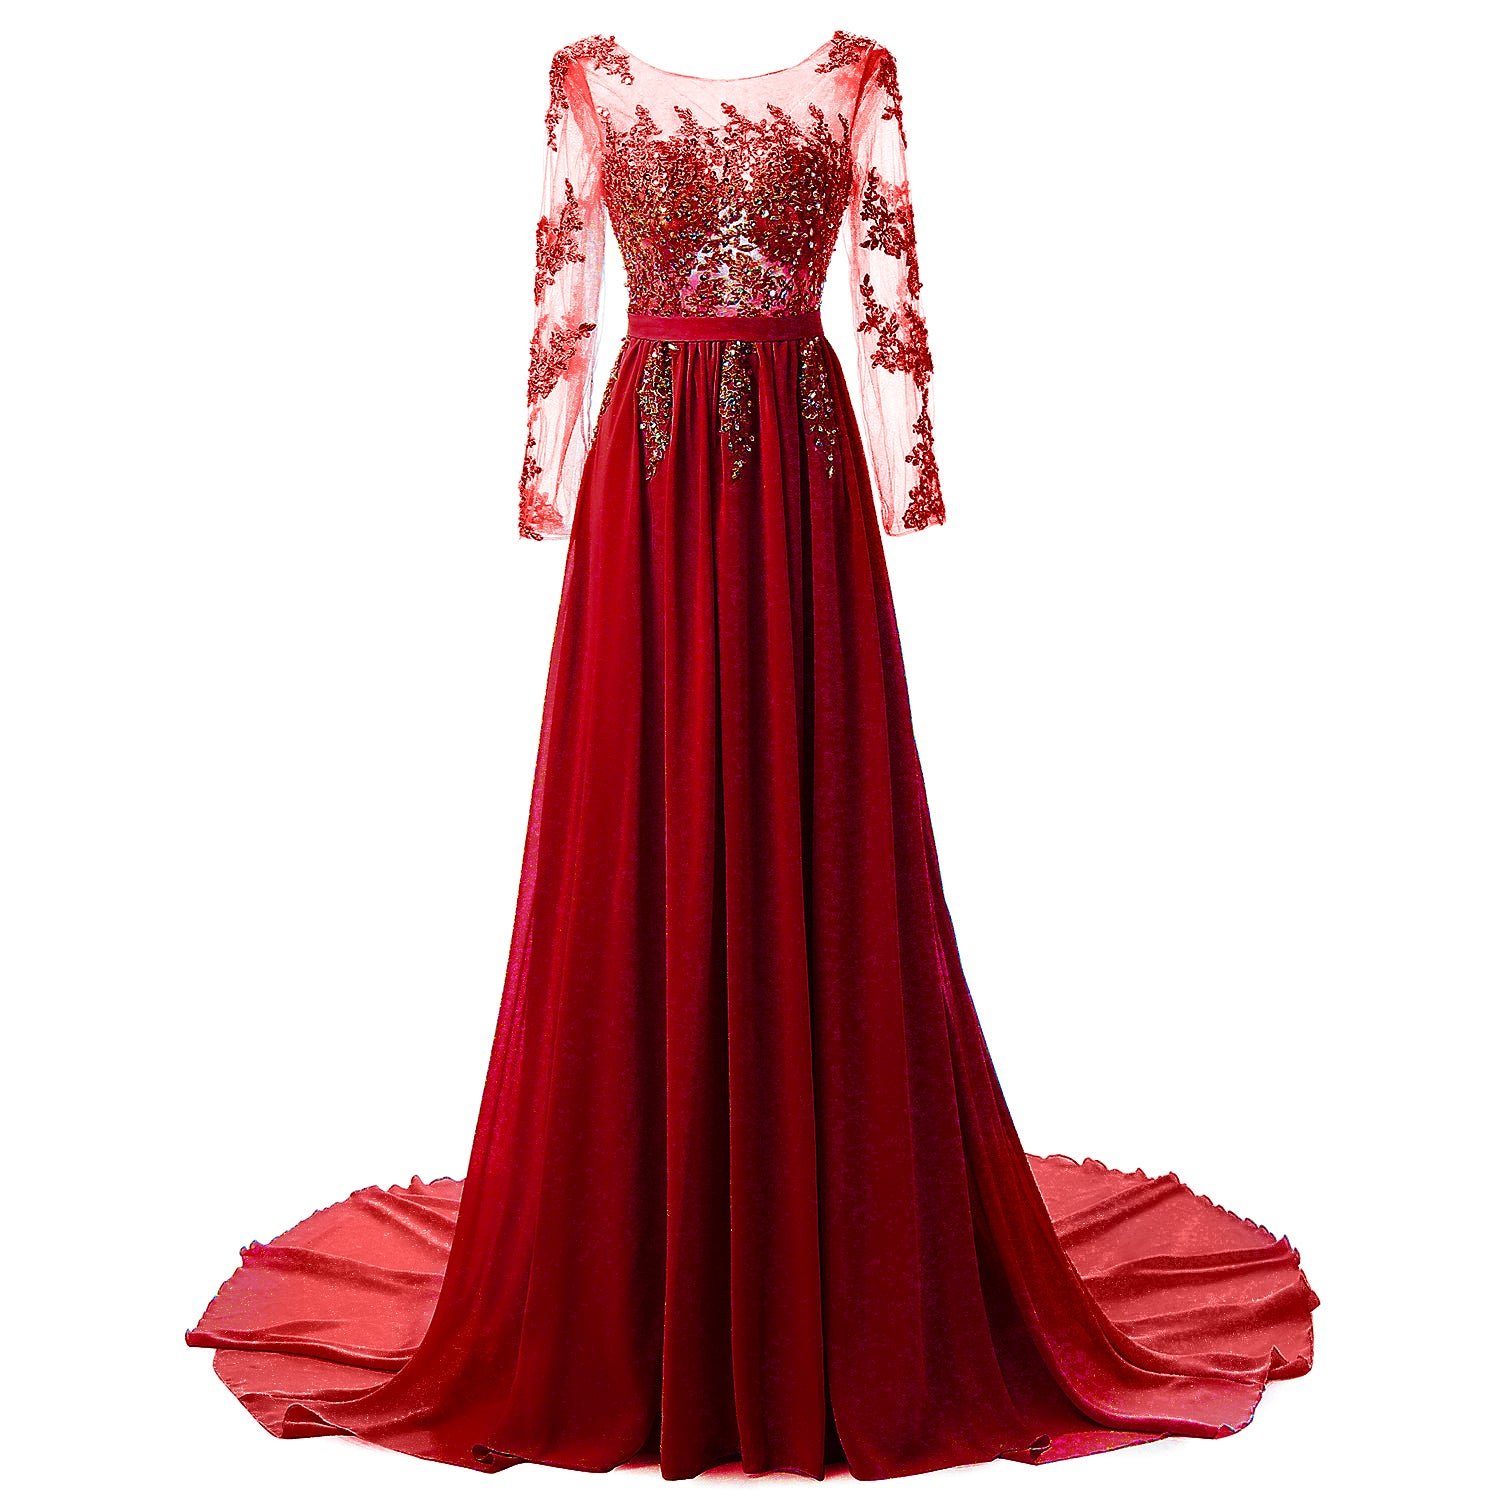 Long Sleeve Lace and Chiffon Womans Gown - Beautiful Chiffon Gown - Long Sleeve Lace Gown